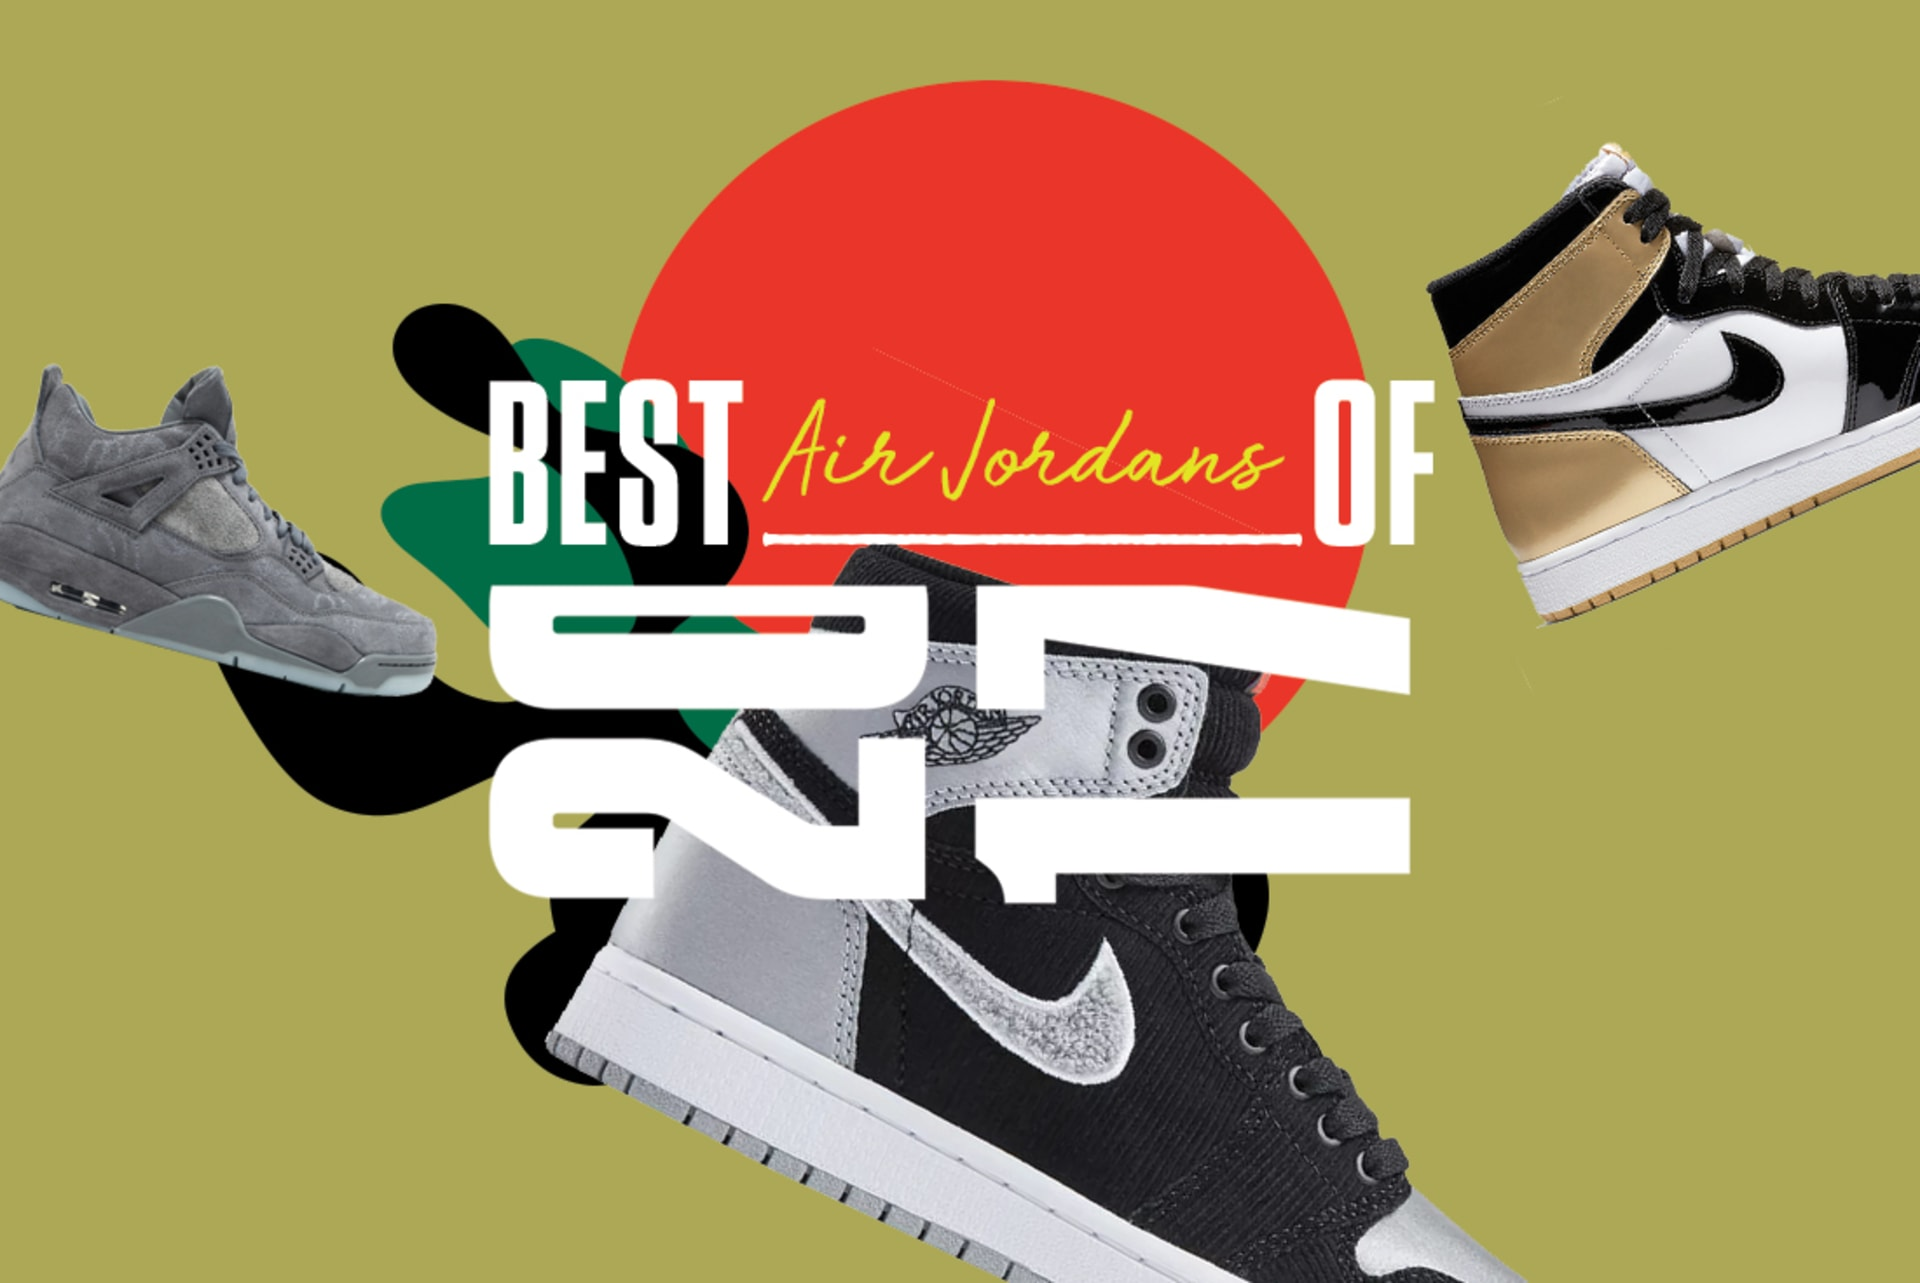 a25346e94fad59 Best Air Jordans of 2017